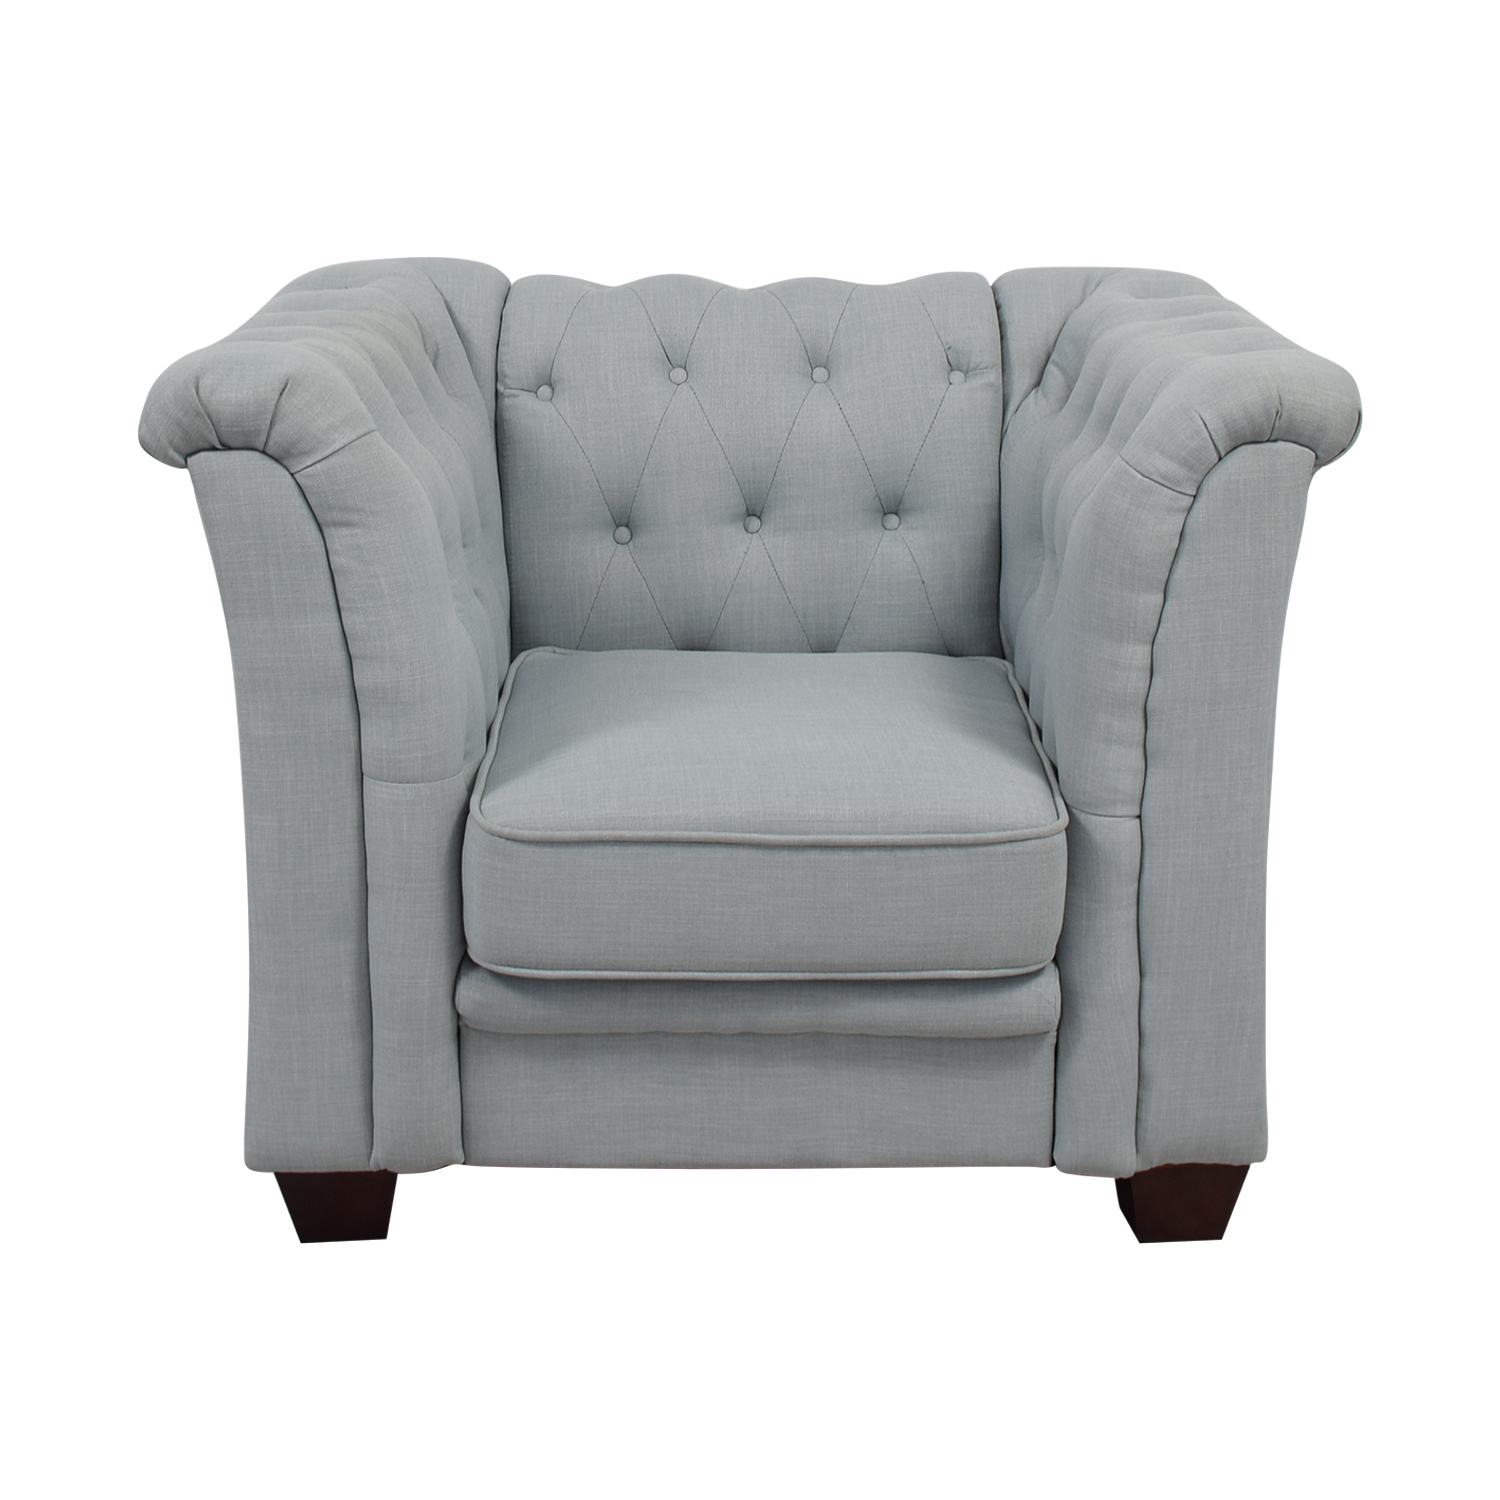 buy Delvi Furniture Sky Blue Tufted Accent Chair Delvi Furniture